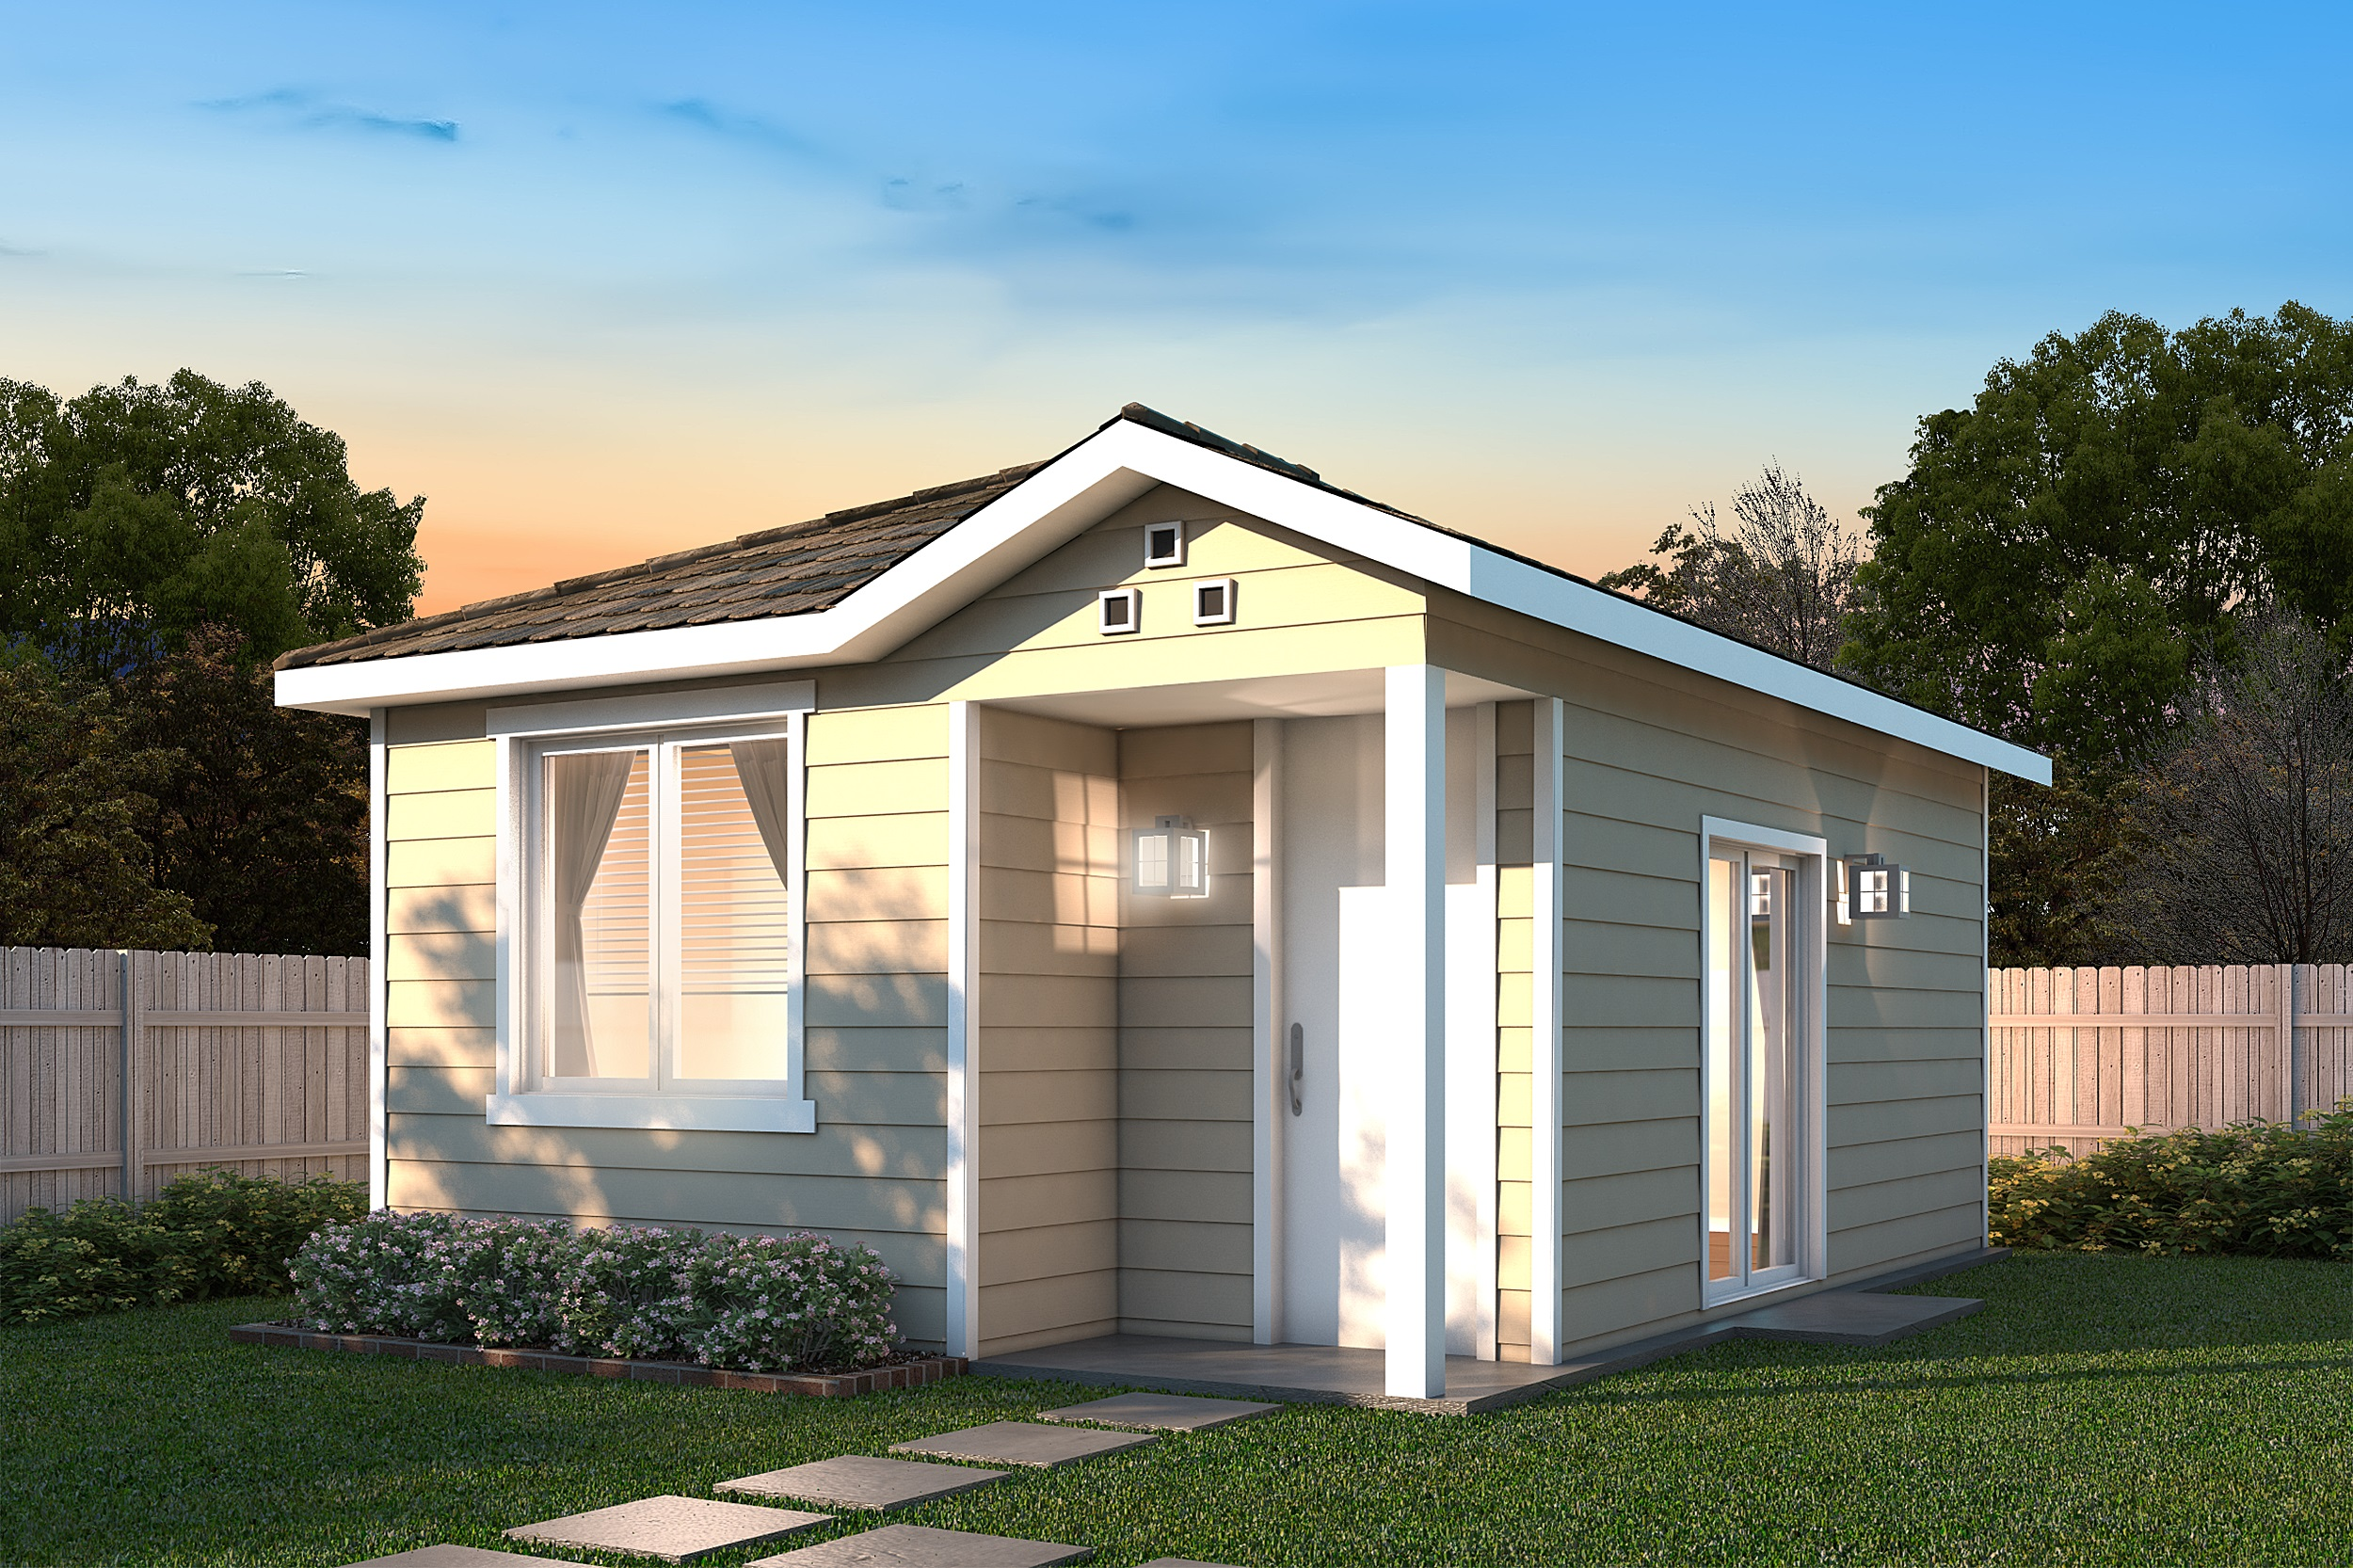 House plans with granny flat attached home design for House plans granny flats attached